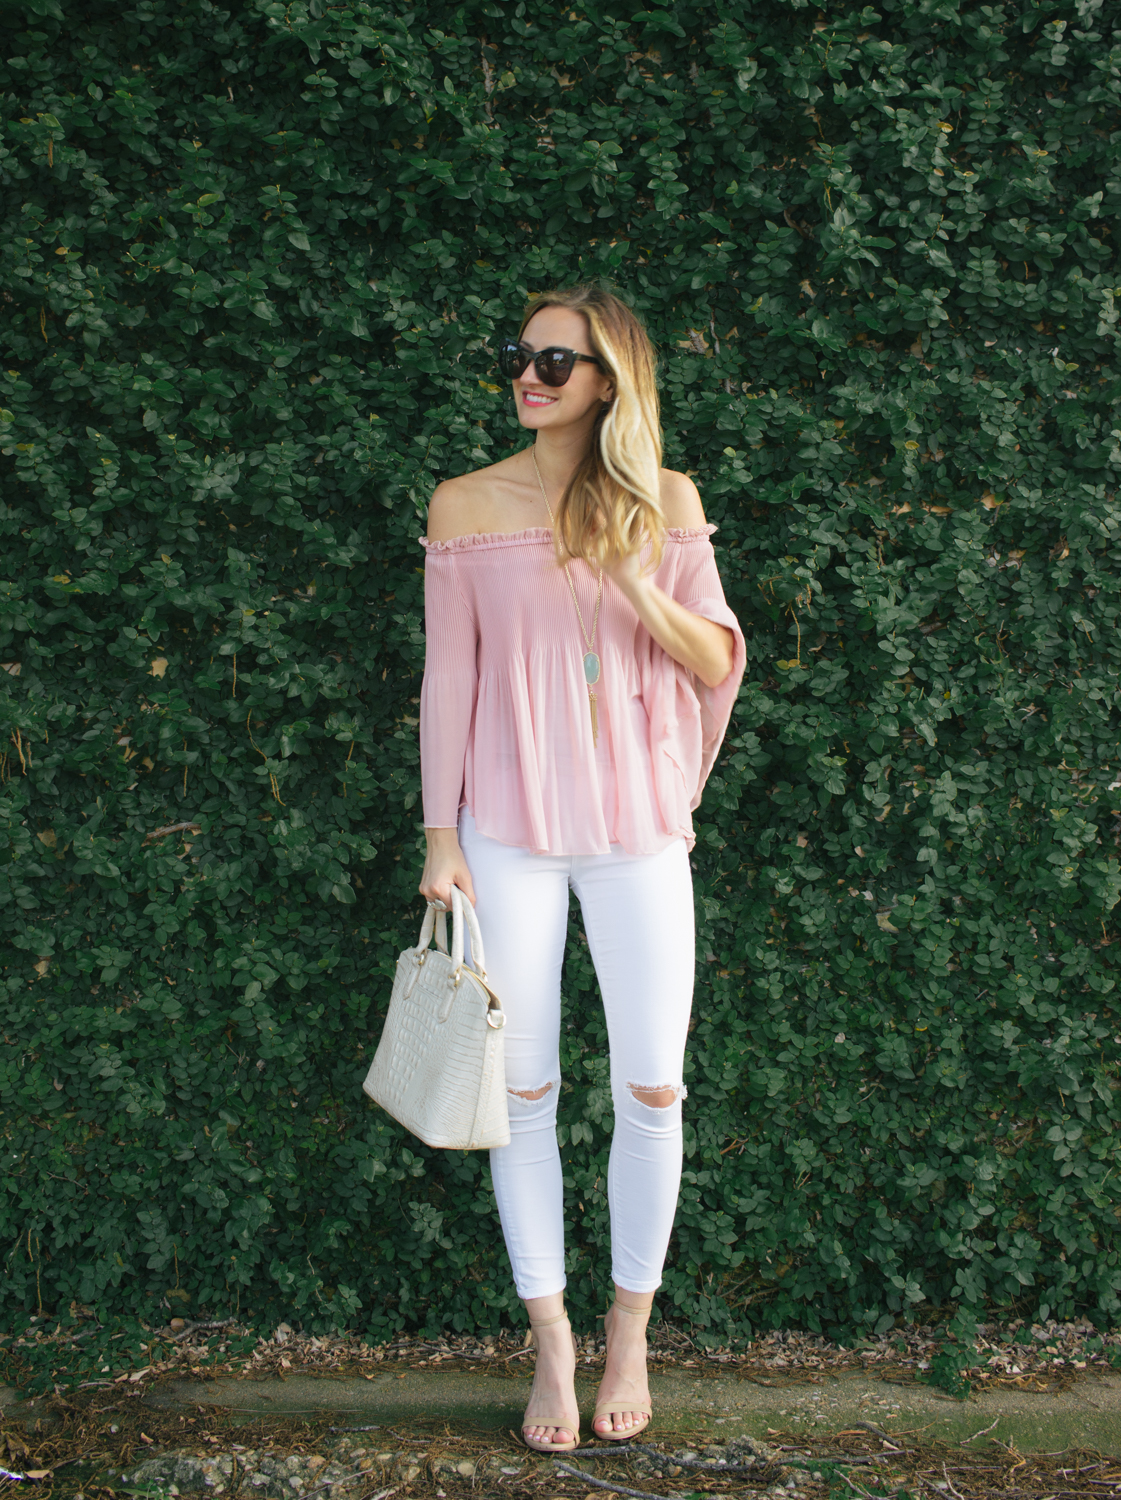 livvyland-blog-olivia-watson-austin-texas-fashion-blogger-blush-pink-off-shoulder-top-topshop-white-skinny-jeans-date-night-outfit-summer-2